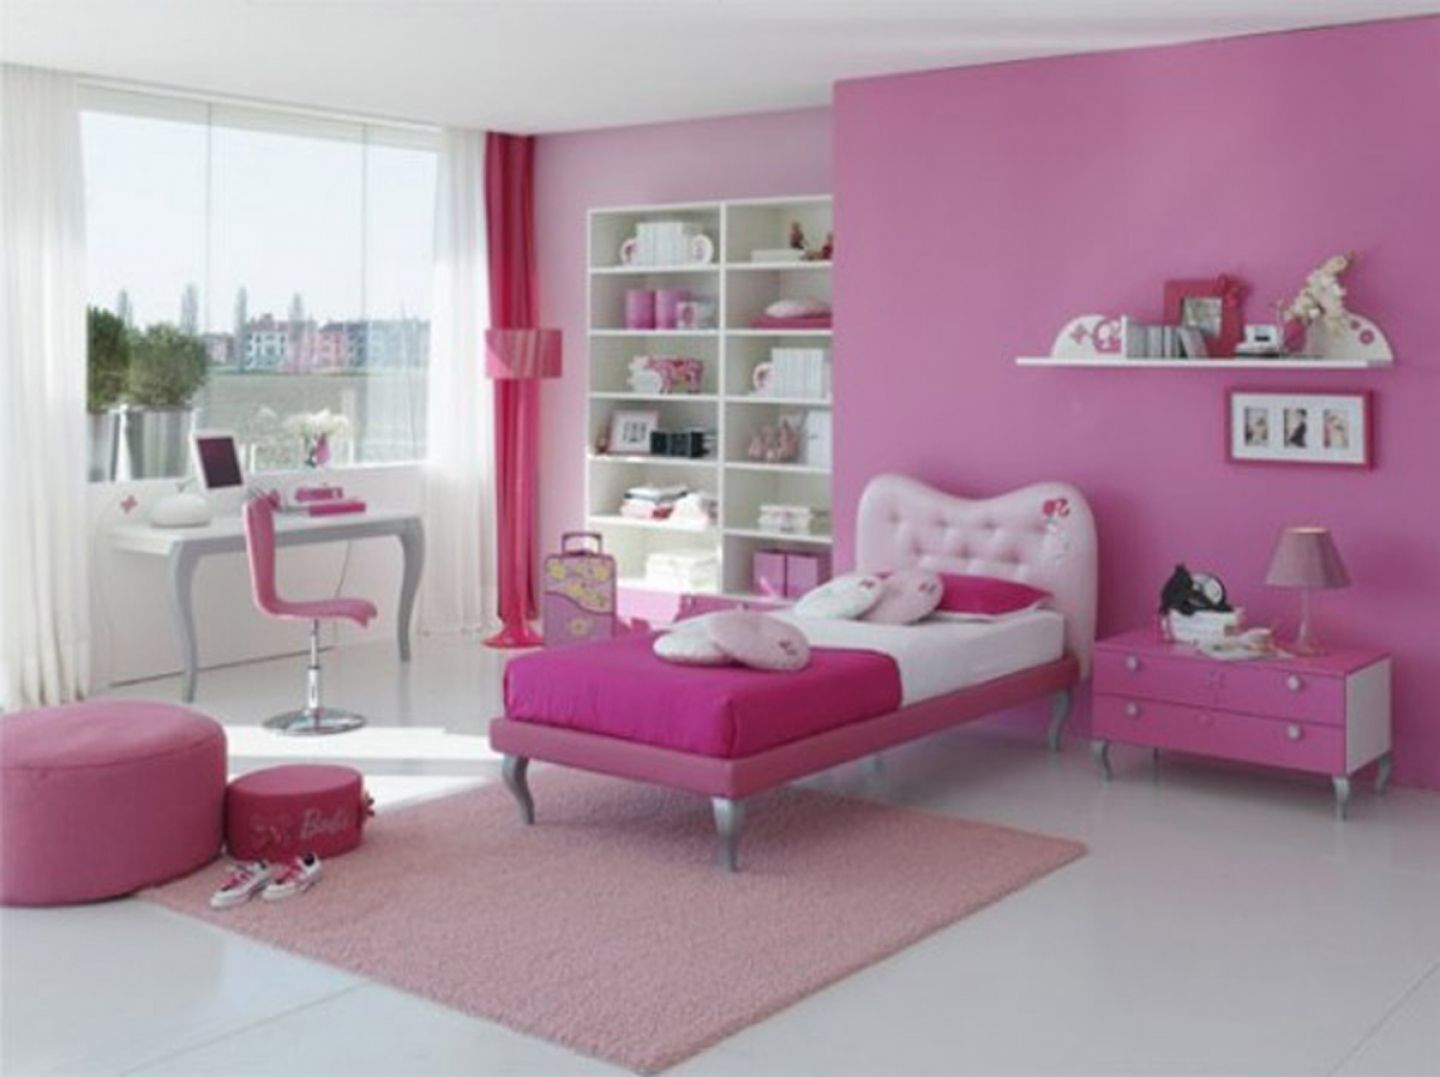 Beautiful bedroom interiors - Creating A Bedroom Design For Teenage Girl Is Identical With Full Color Yeah There Are So Many Color And Decoration To Make A Beautiful And Nice Room For